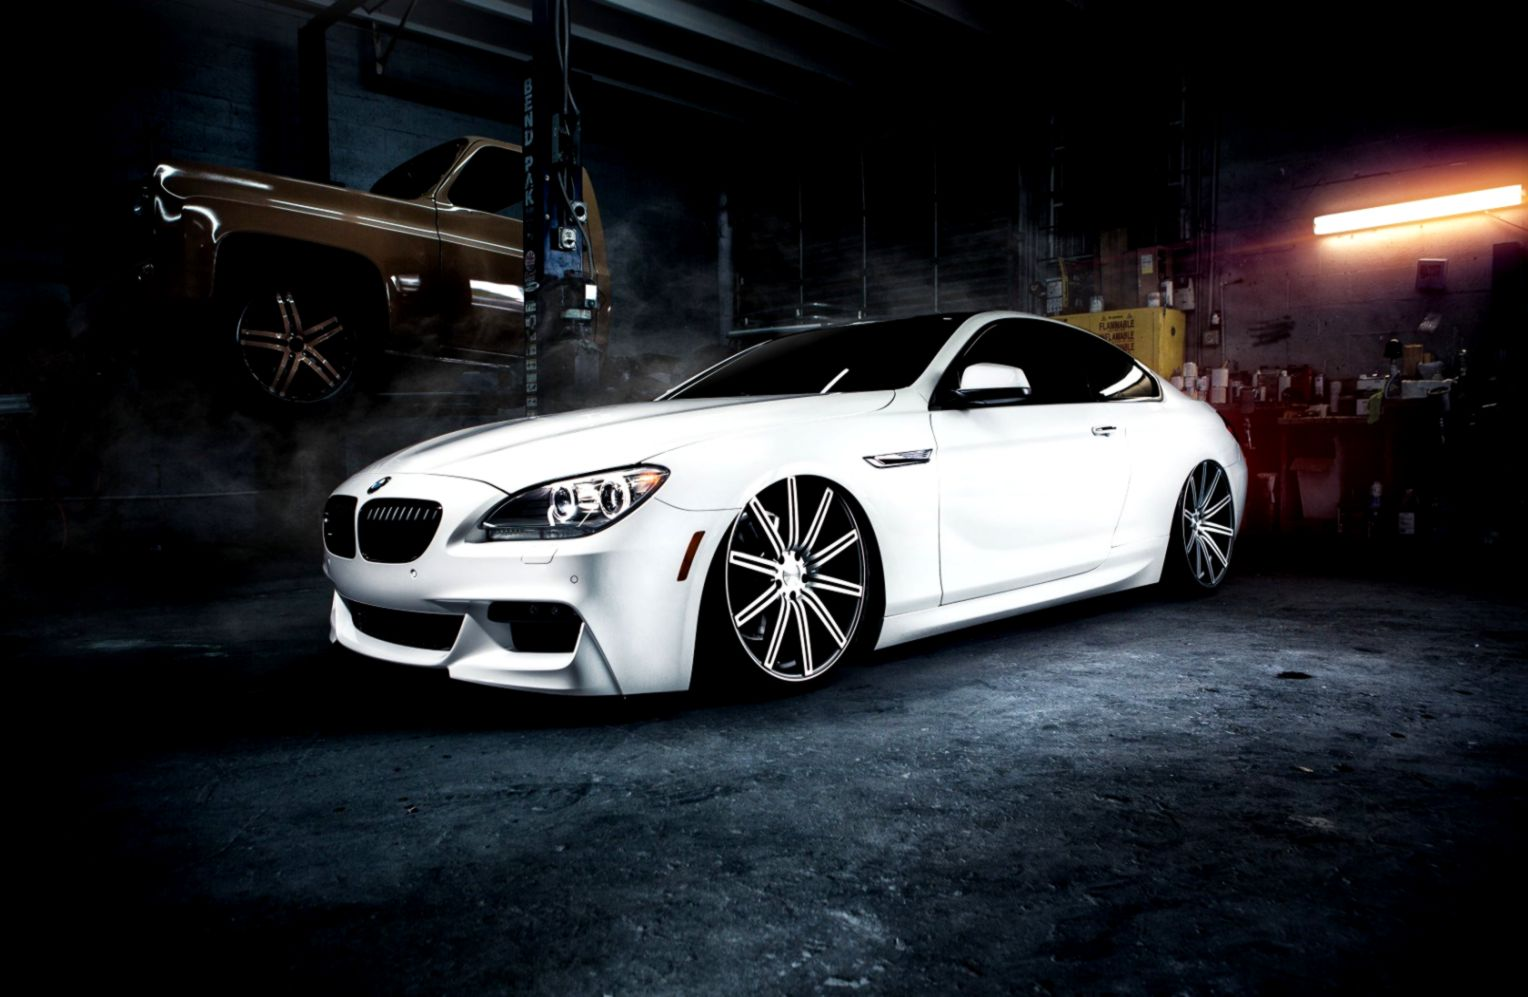 Bmw M6 White Car Garage Hd Wallpaper Joss Wallpapers